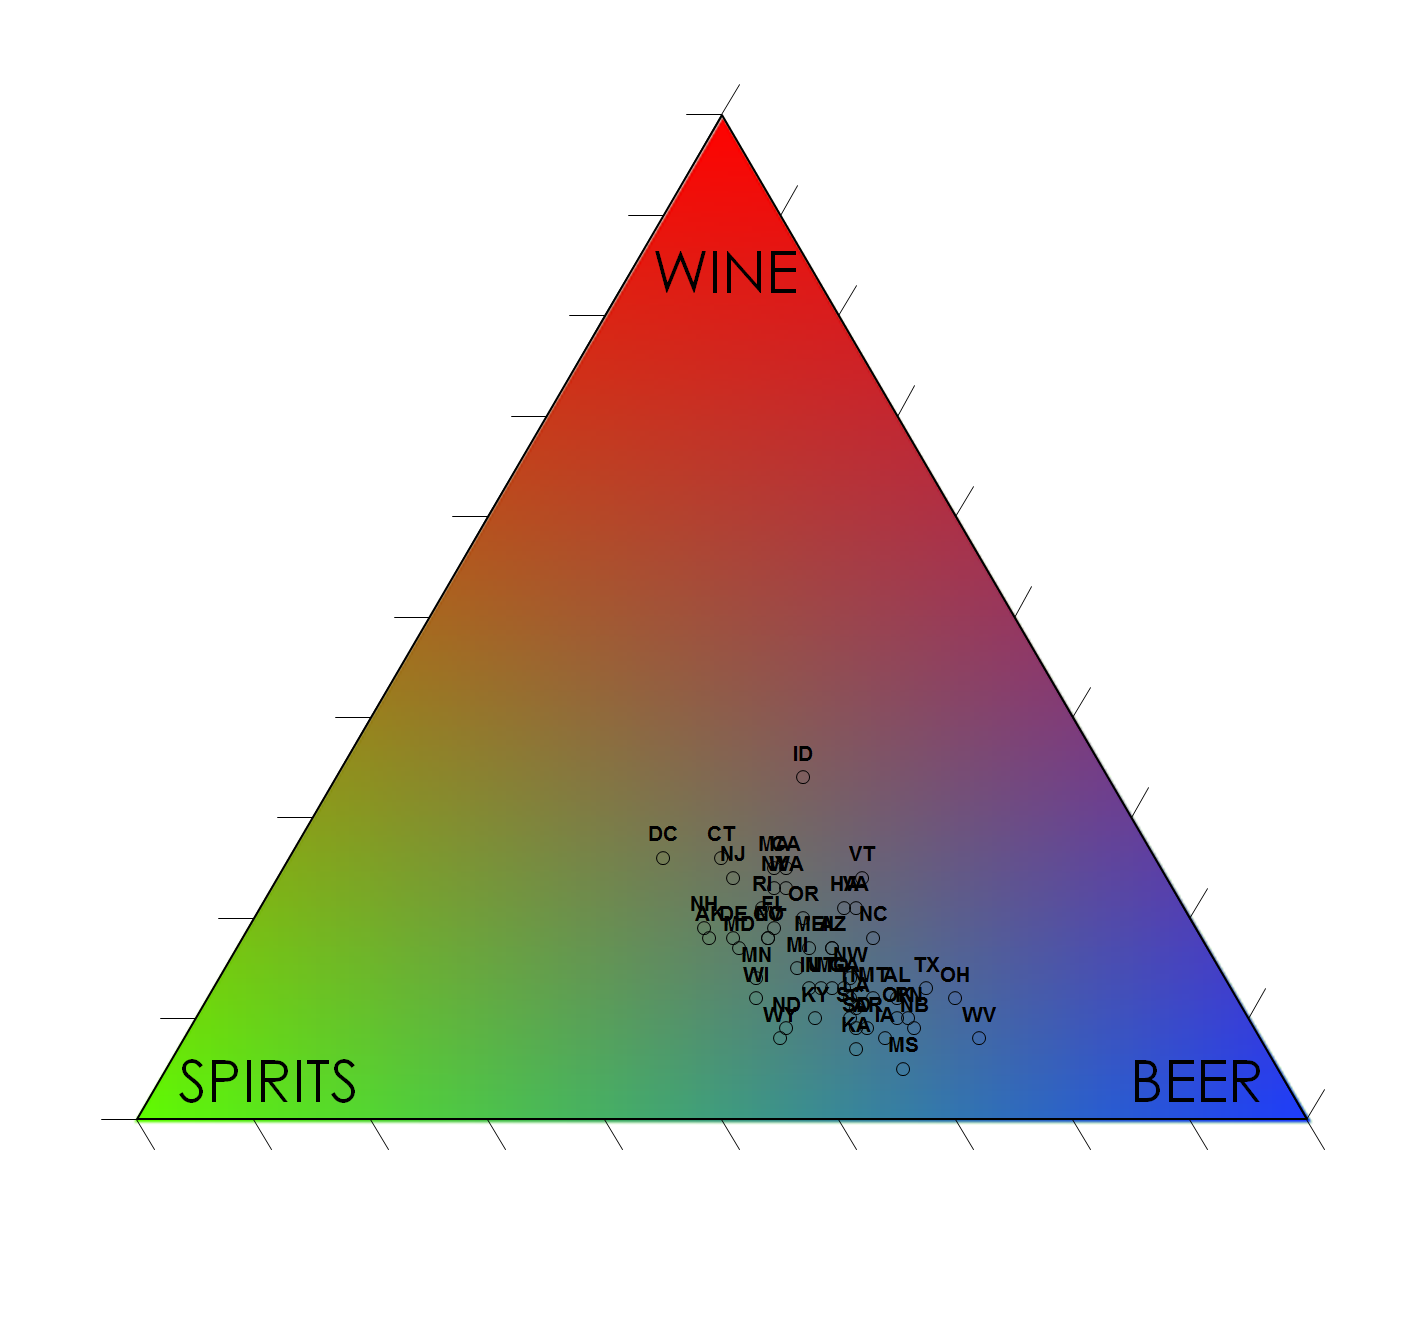 This is a  ternary plot  which is a fun way to show how a feature is split between three elements. In this case the consumption of three types of alcohol. It also serves as a legend for the classes on this map.